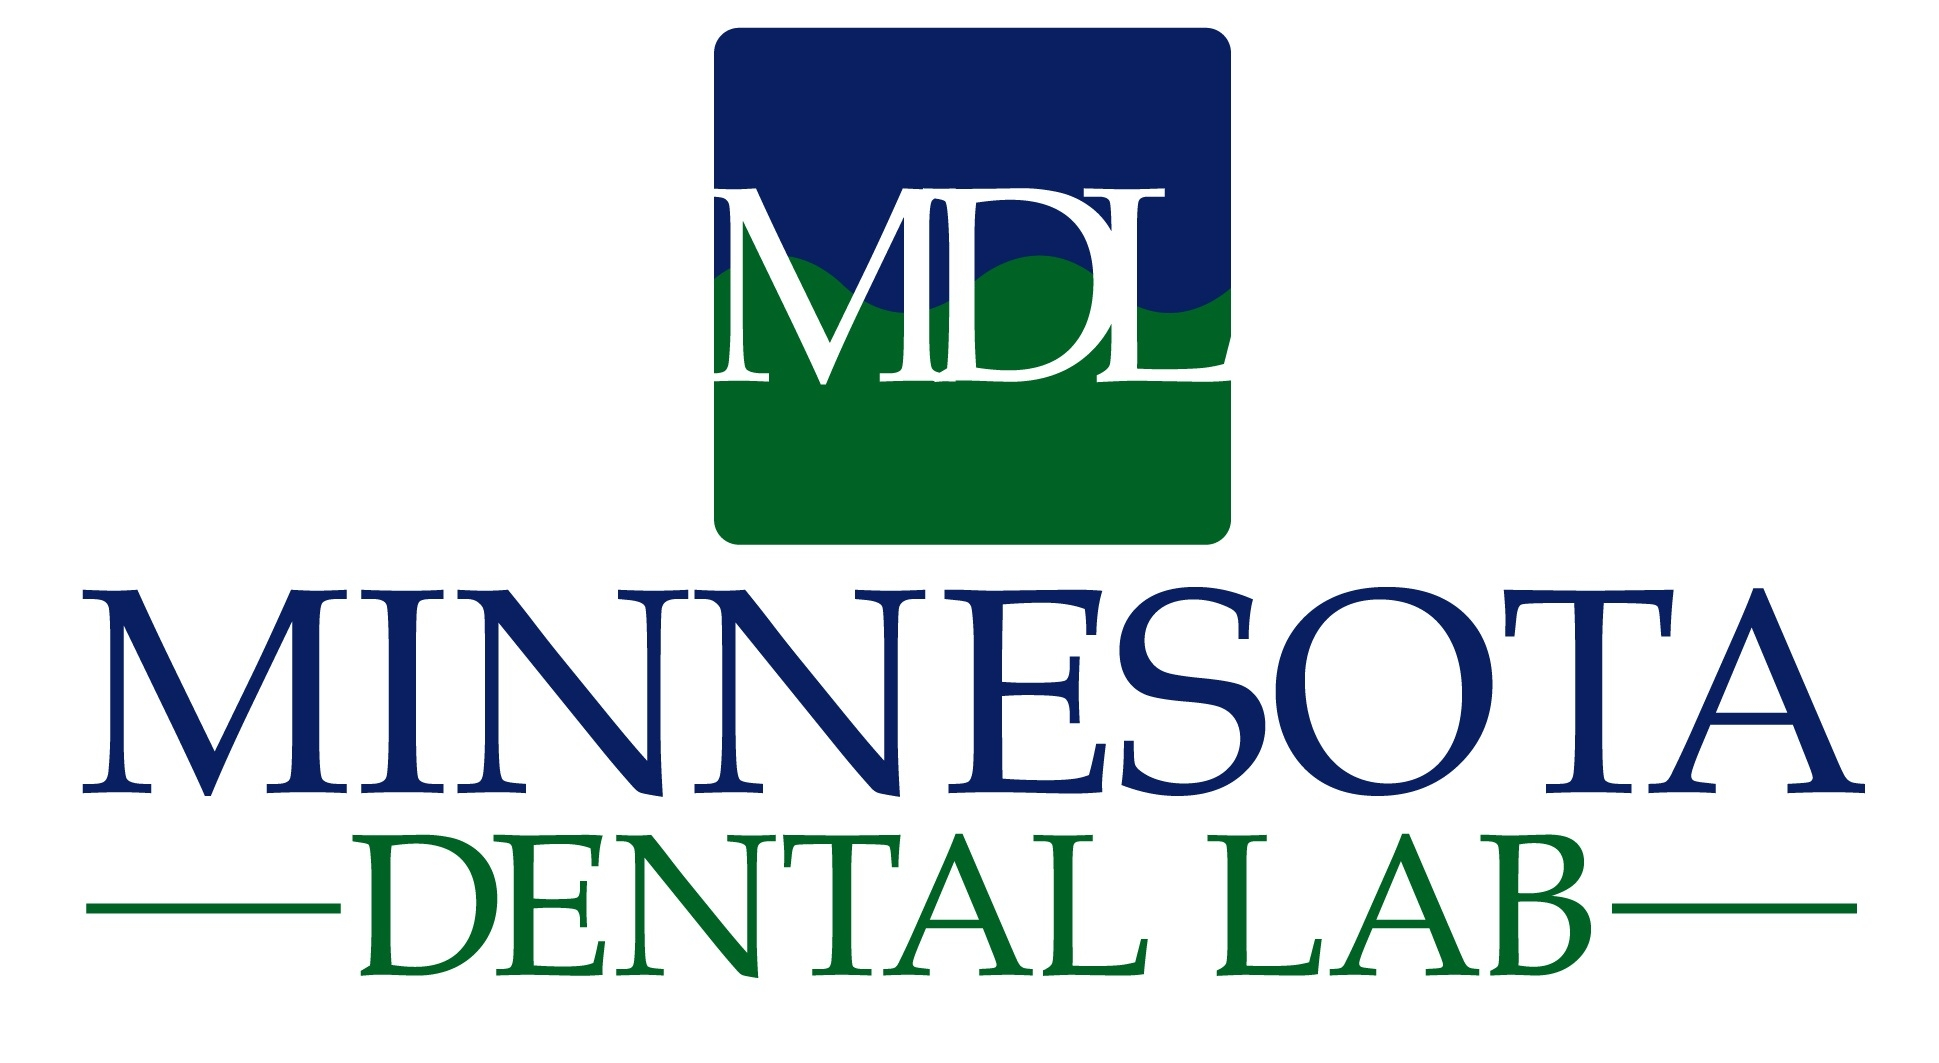 Minnesota Dental Lab image 1